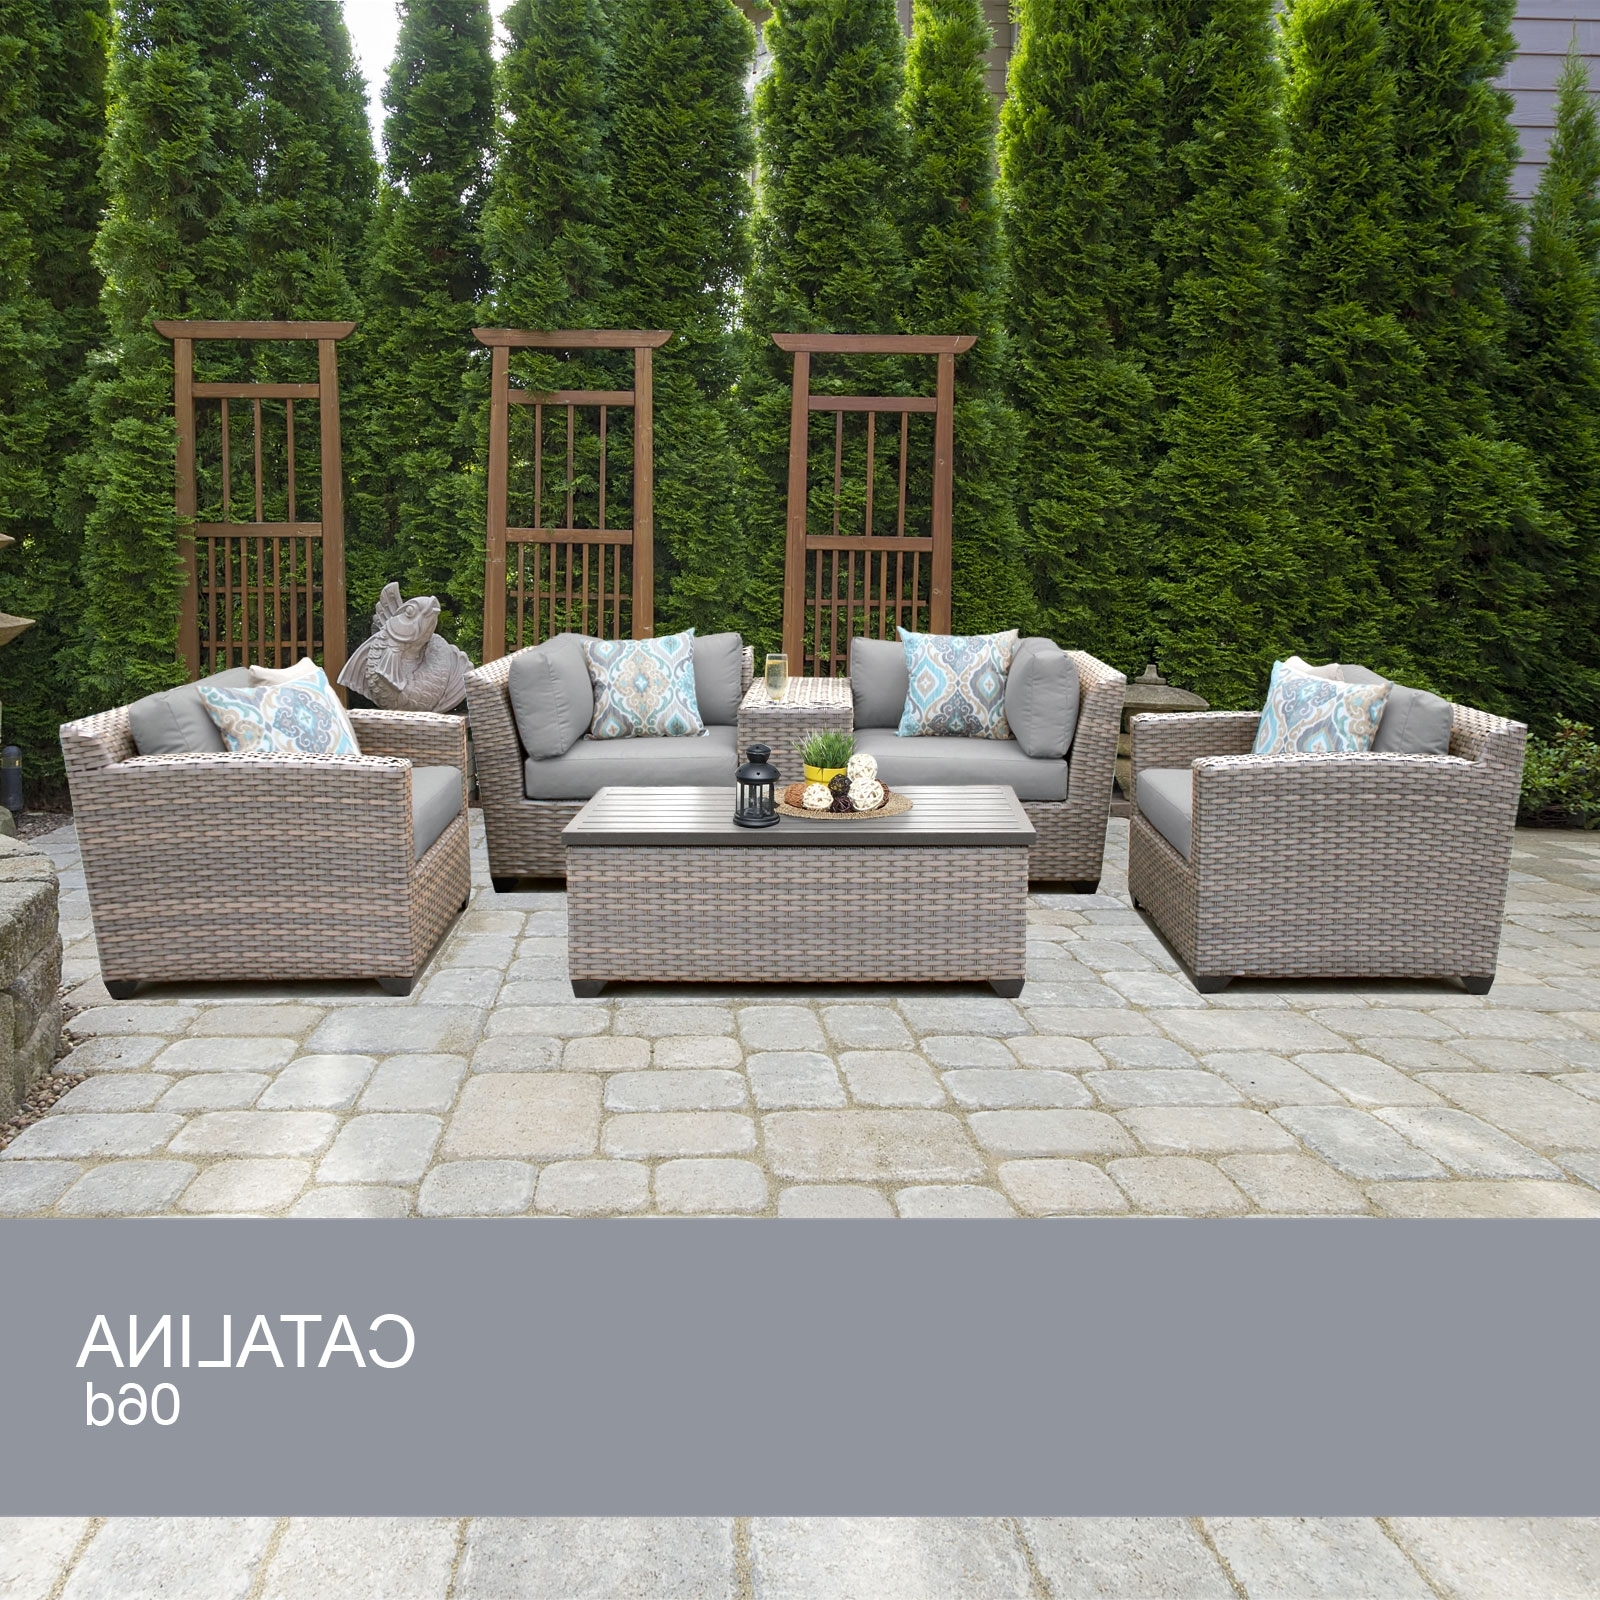 Ebay Patio Conversation Sets Throughout 2019 Resin Wicker Patio Furniture – Airavata (View 9 of 20)